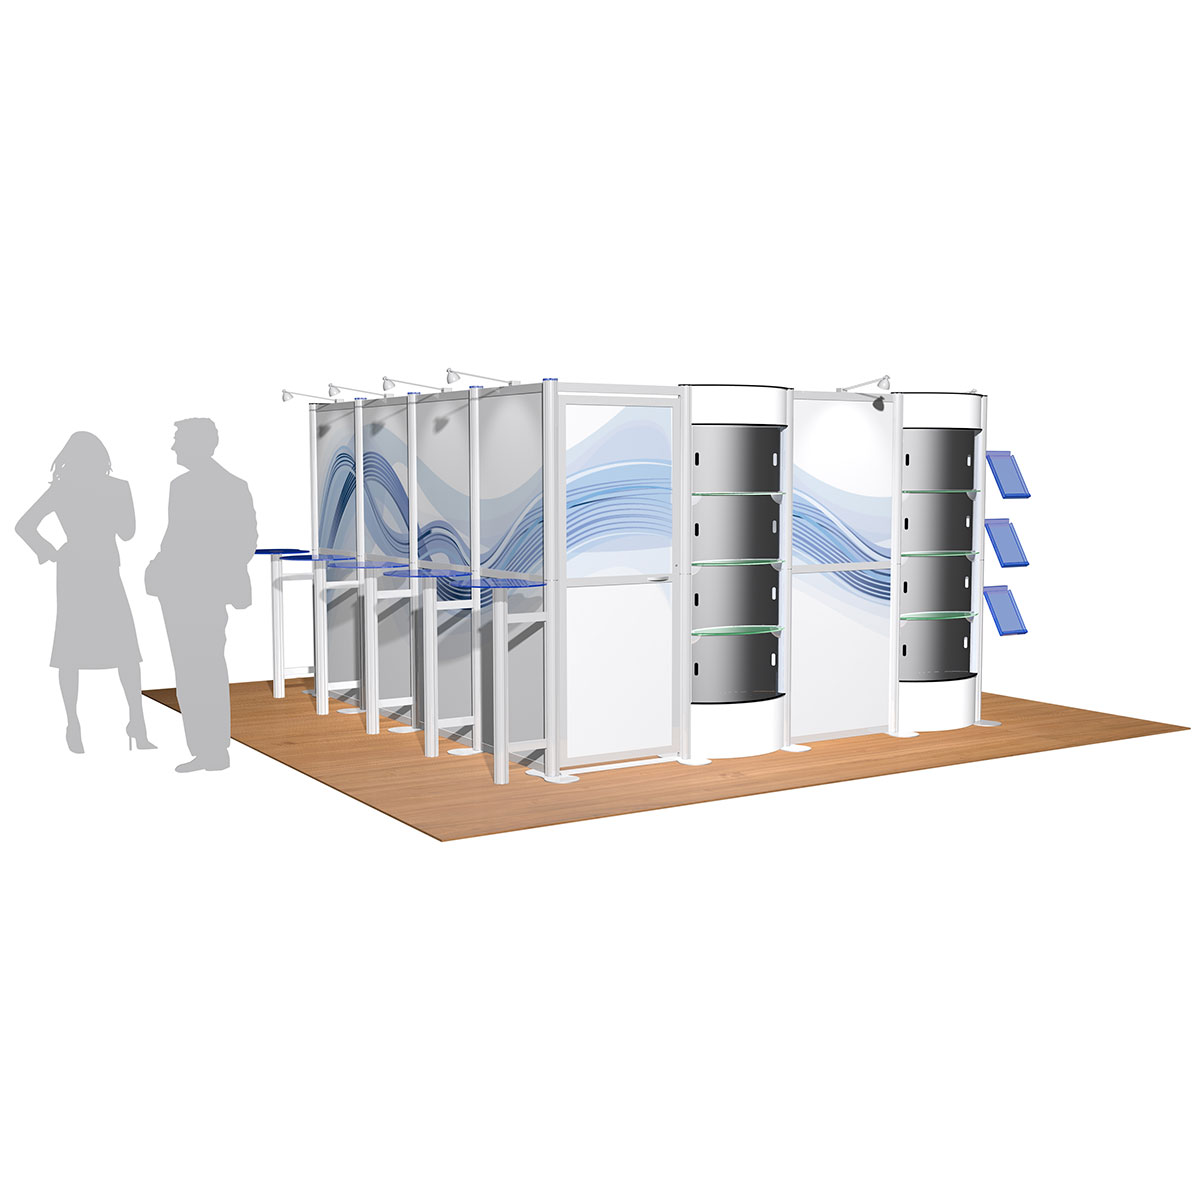 Modular Exhibition Stands Zero : Centro modular exhibition stands